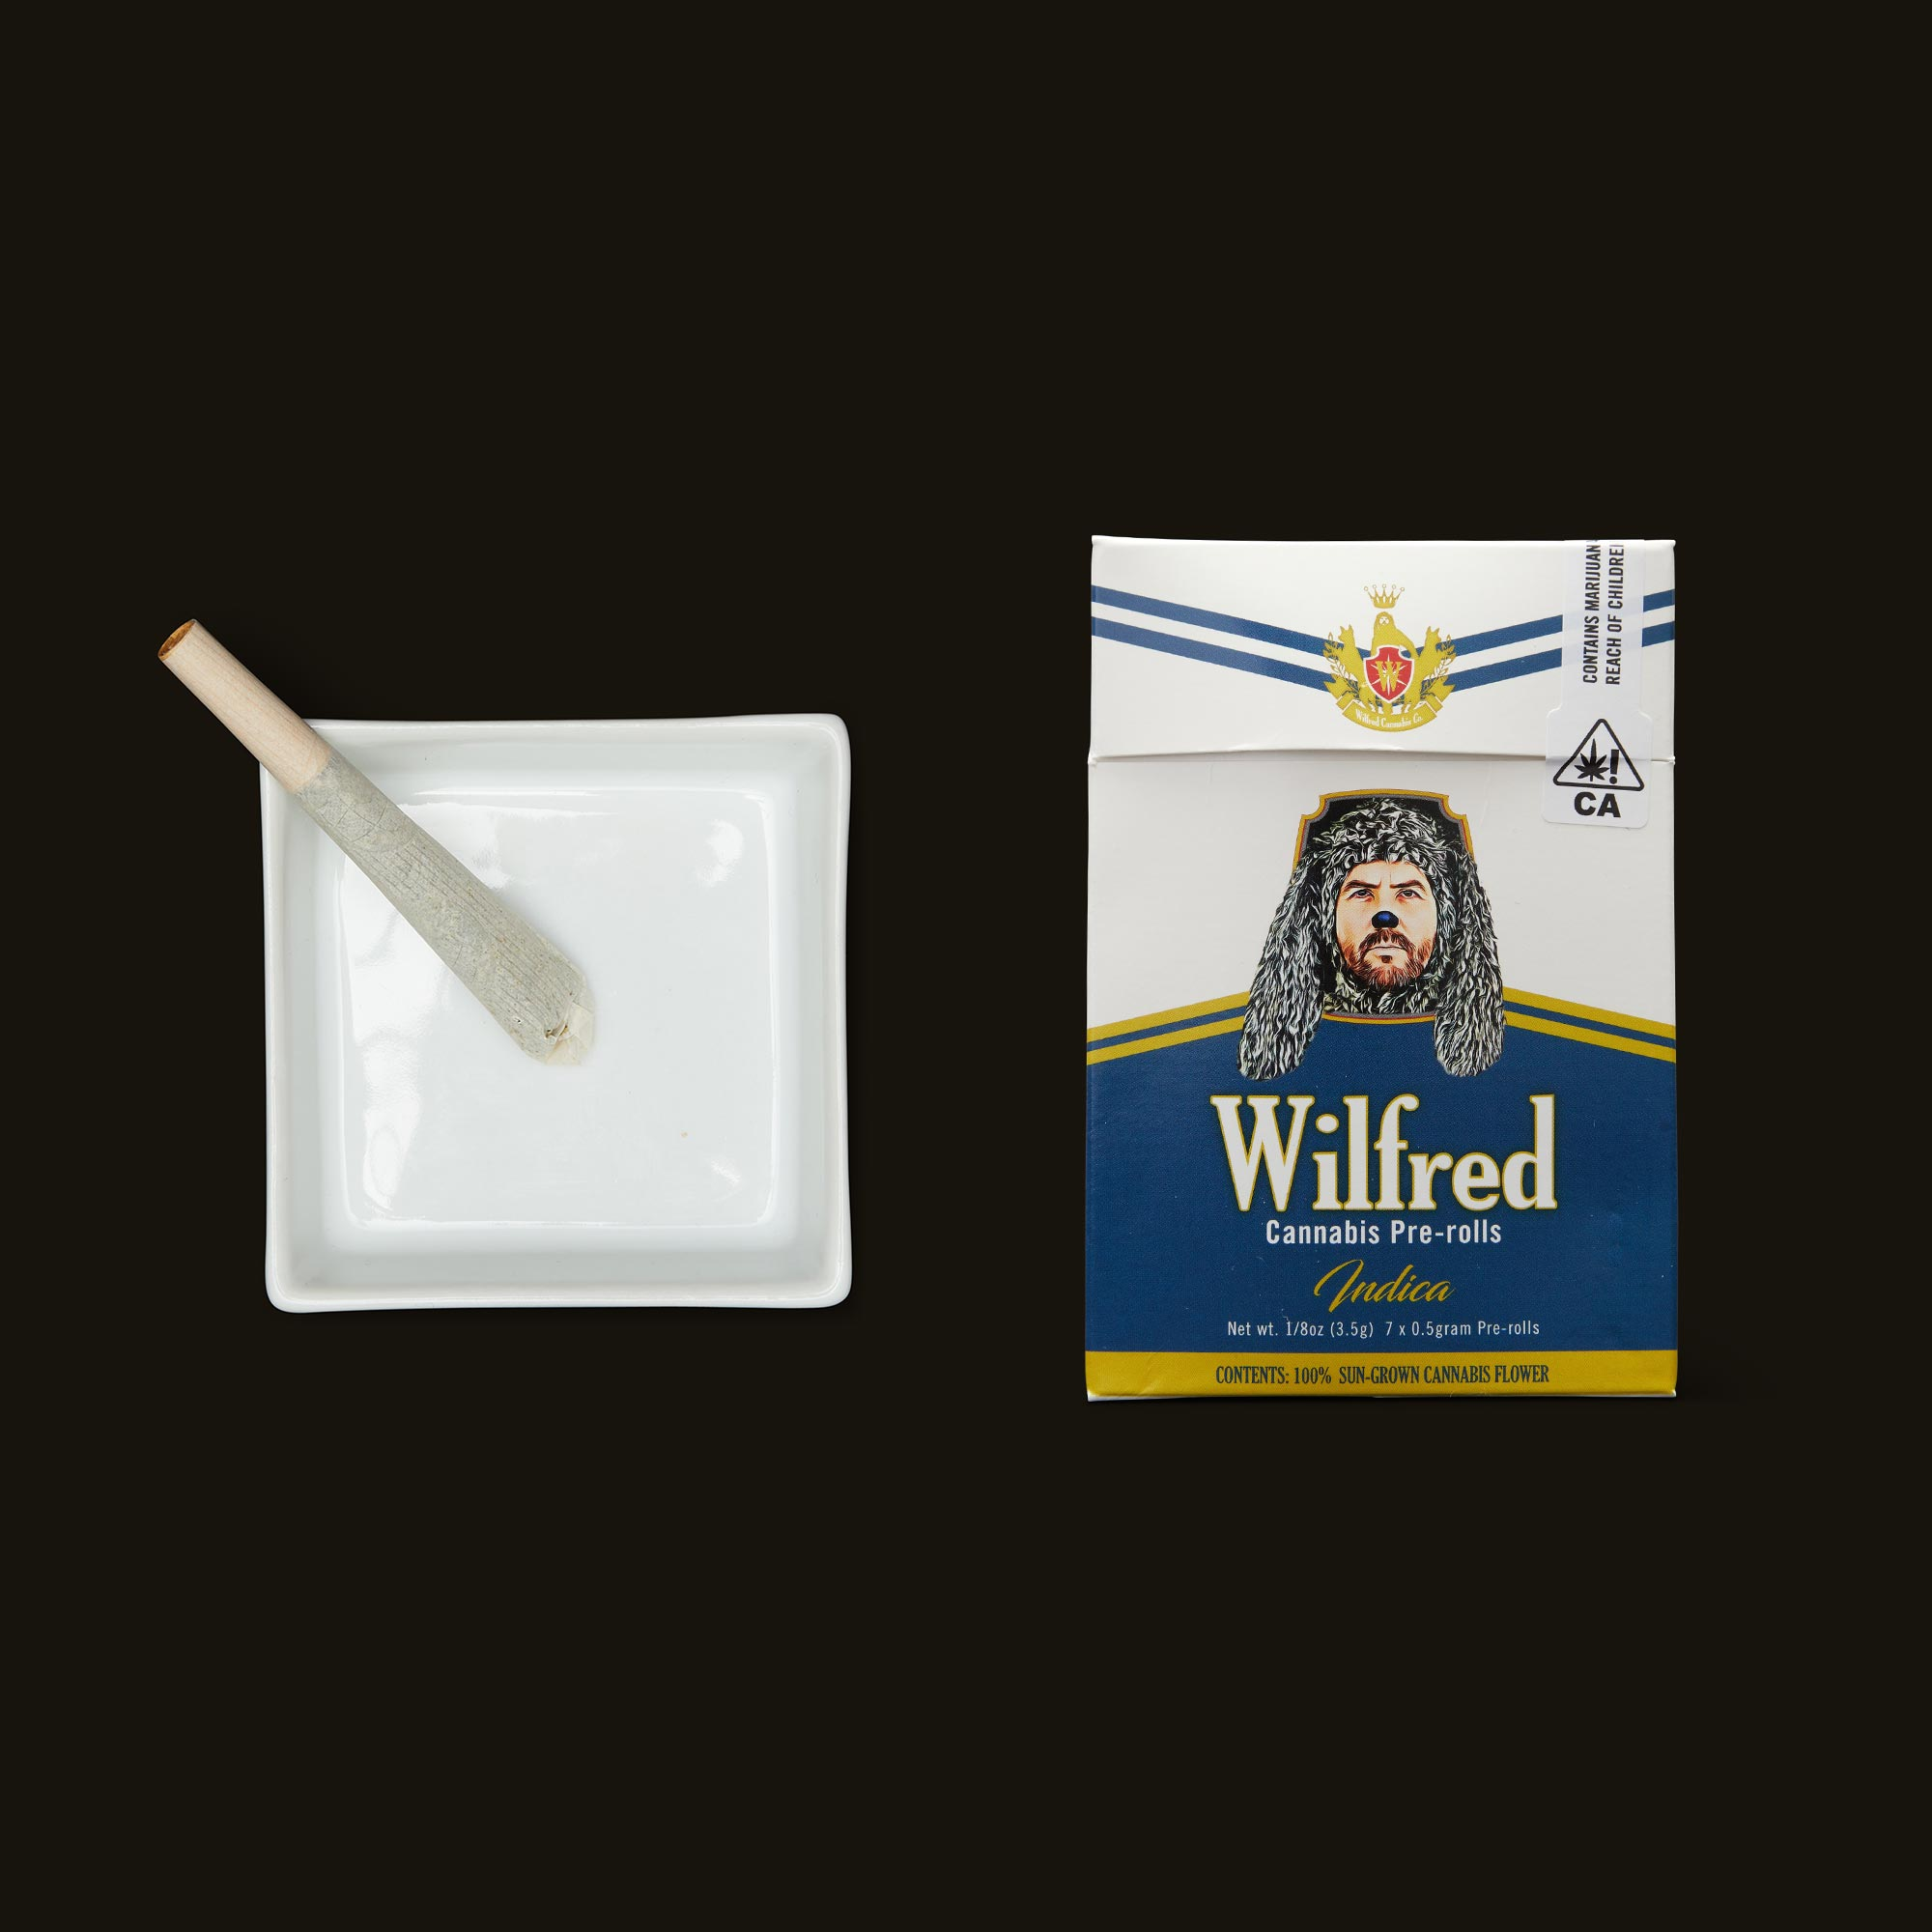 Wilfred Cannabis Indica Pre-Rolls